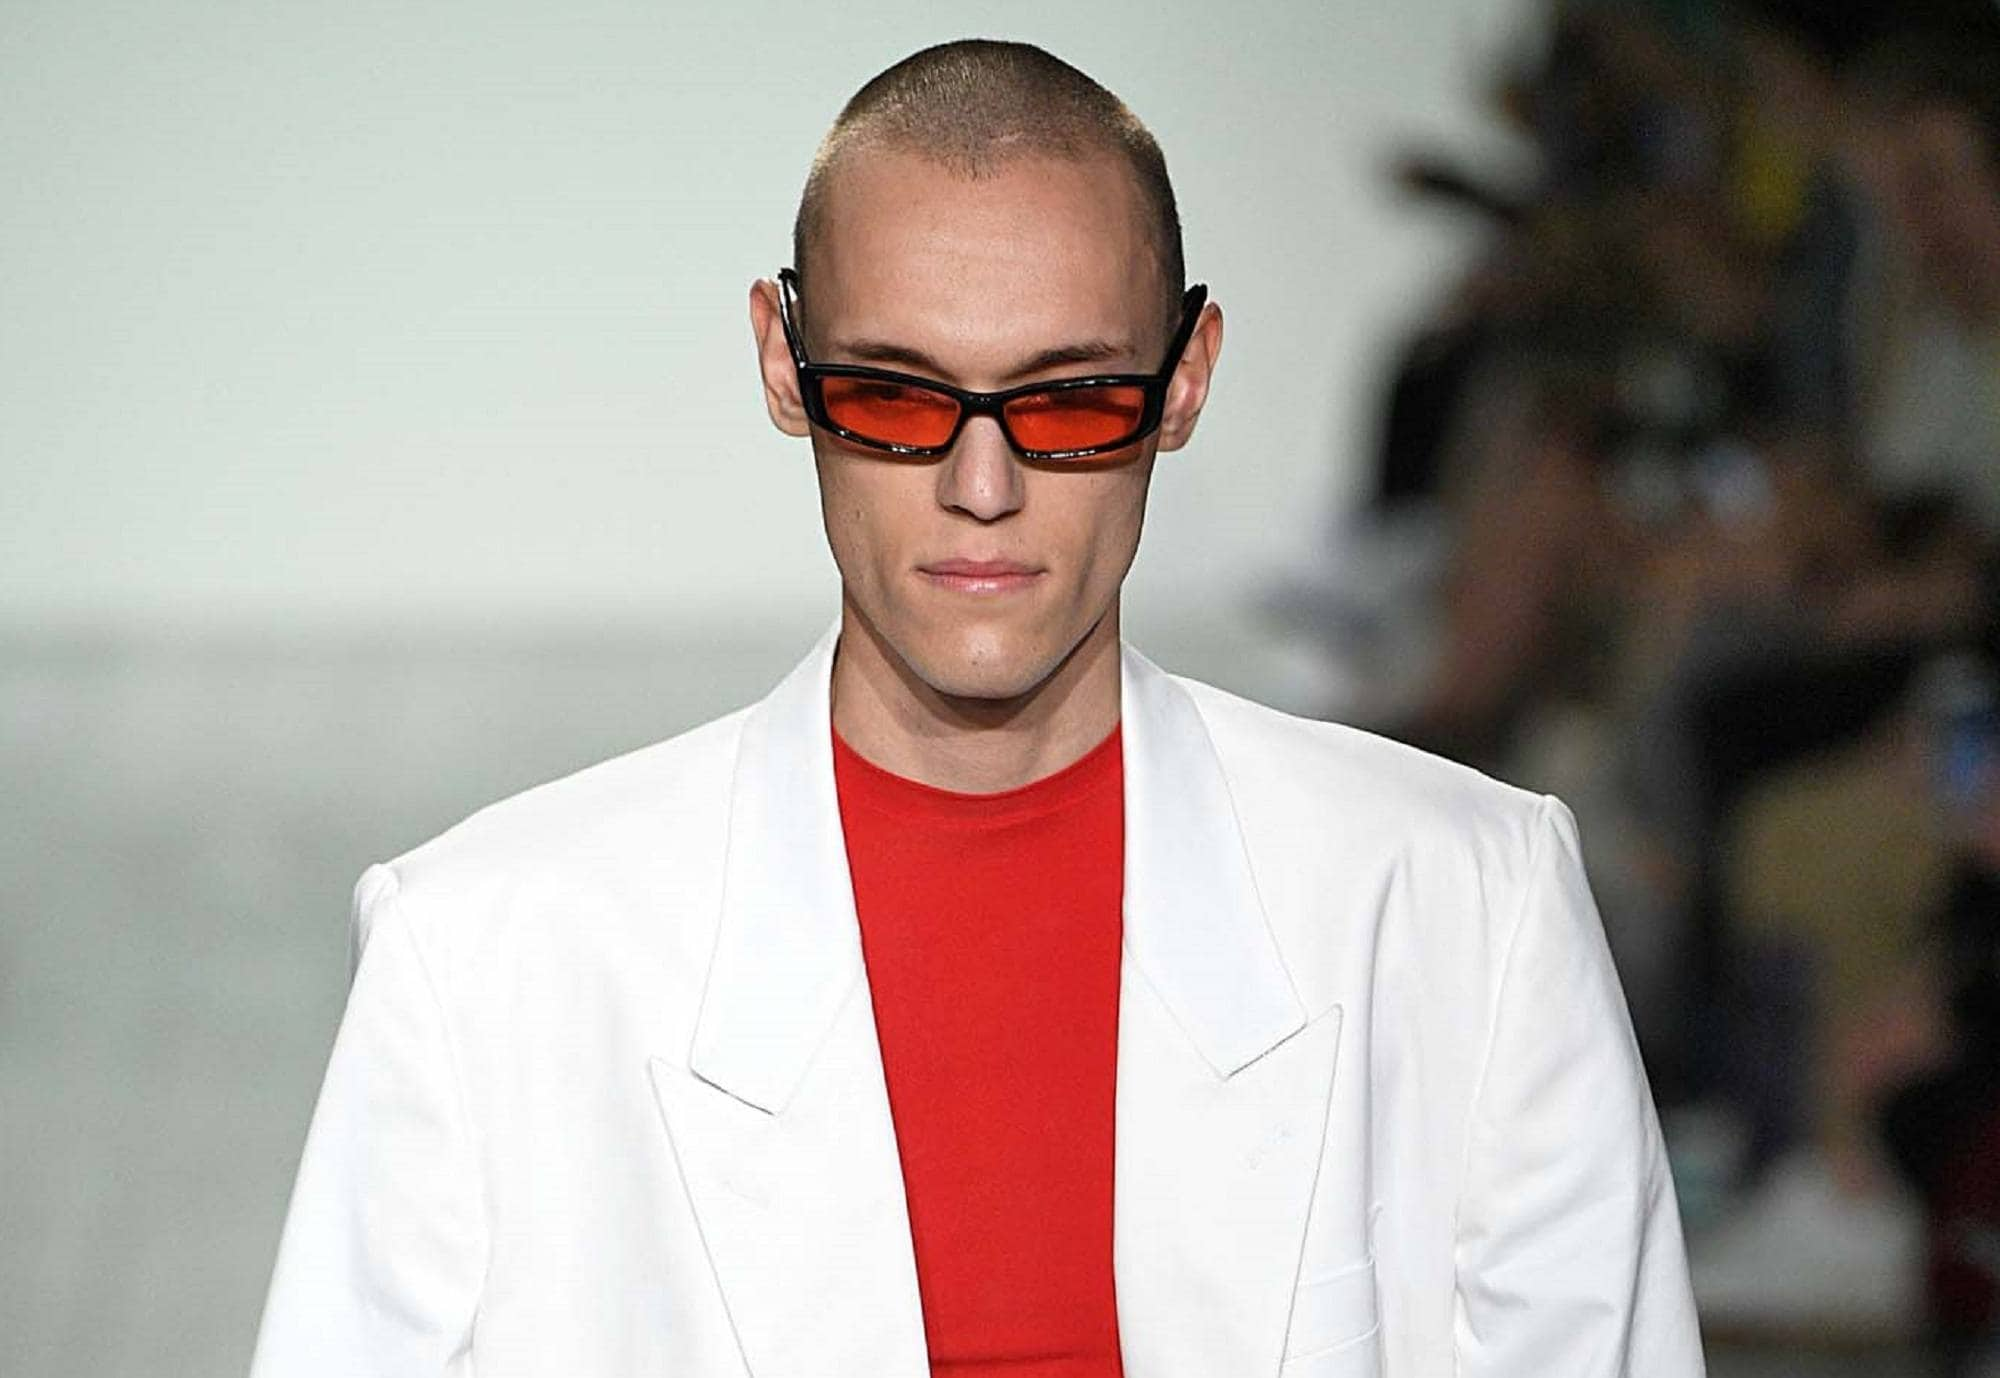 Healthy scalp: Closeup shot of a man with skinhead haircut wearing a white suit on the runway